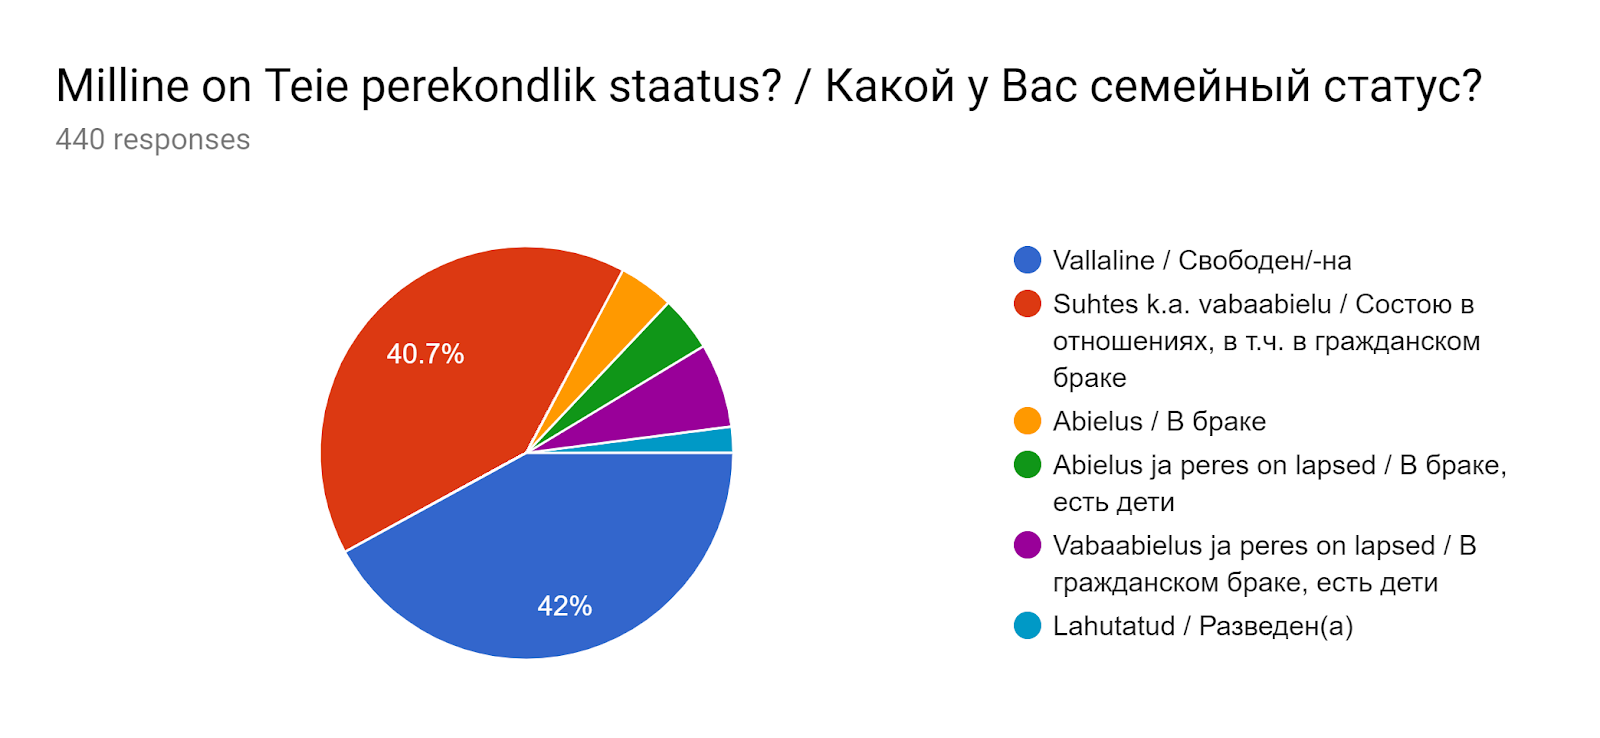 Forms response chart. Question title: Milline on Teie perekondlik staatus? / Какой у Вас семейный статус?. Number of responses: 440 responses.